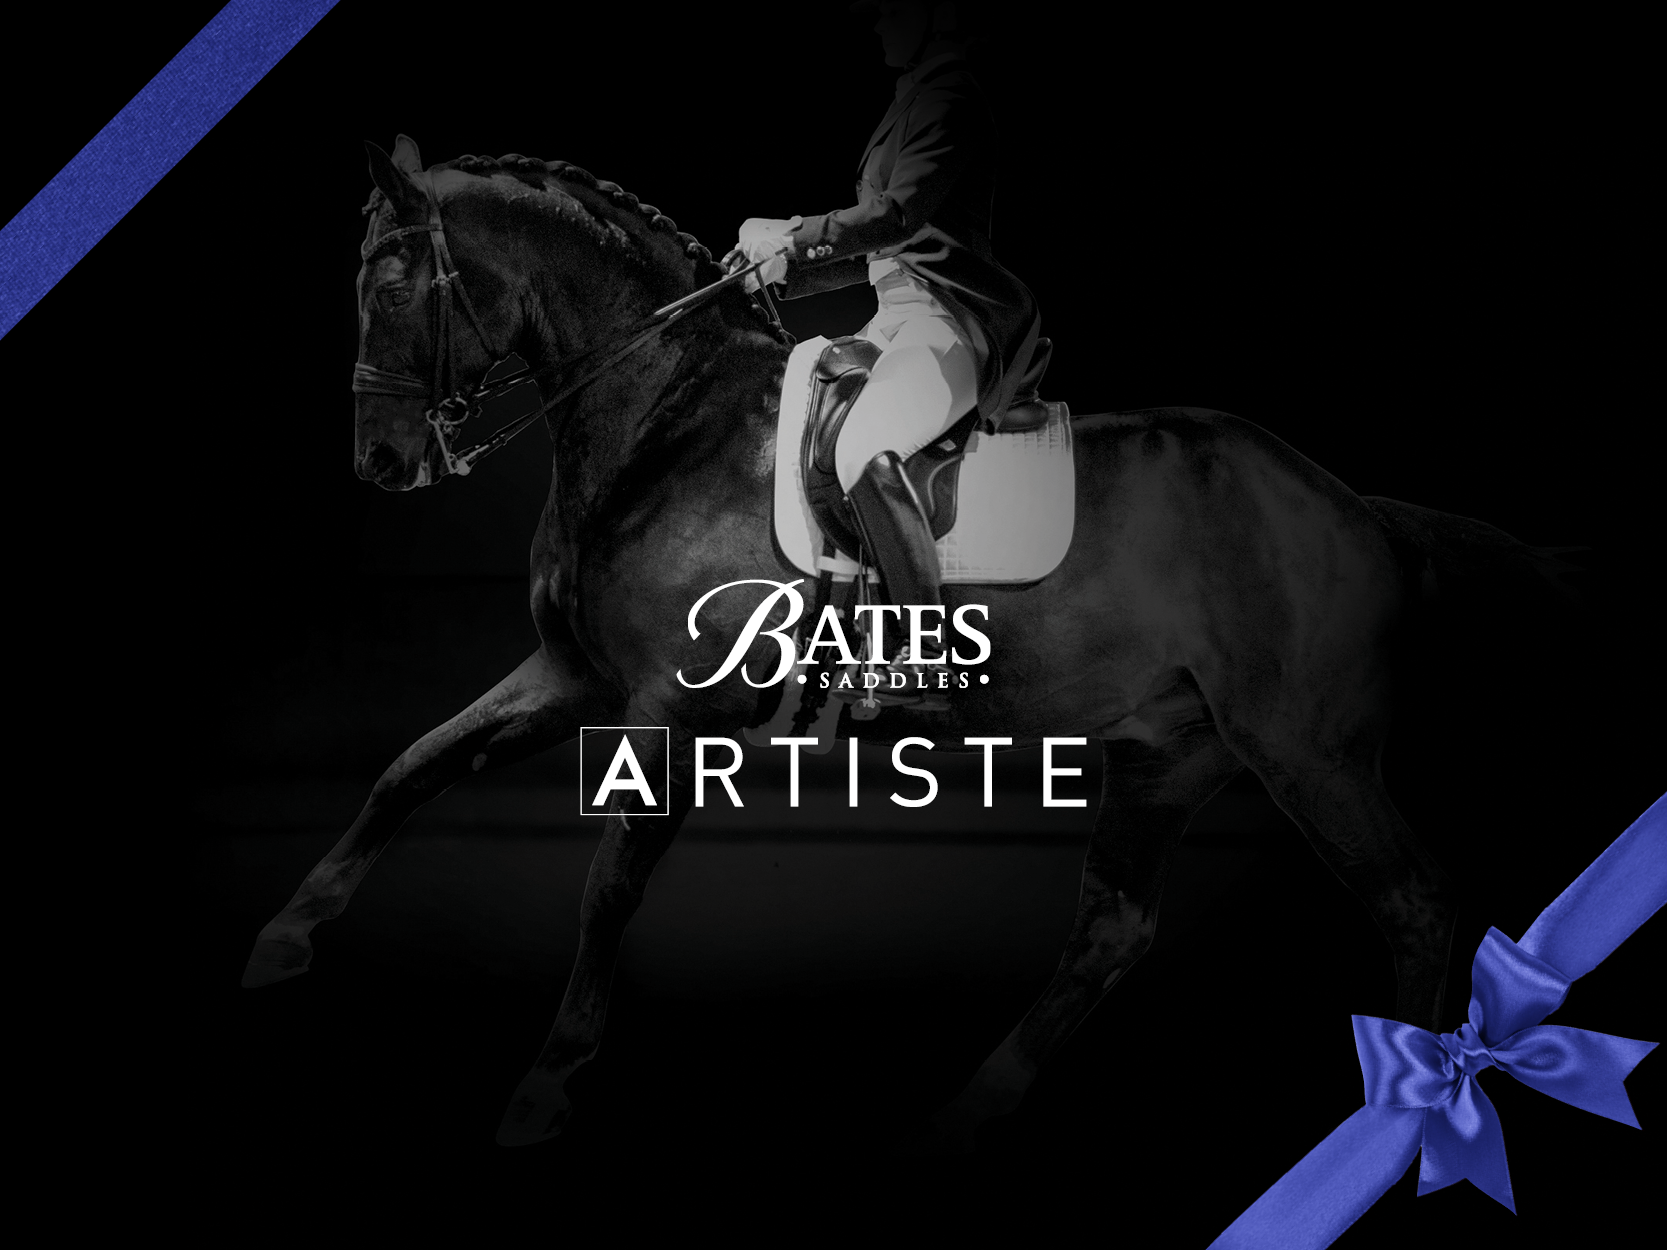 Introducing the NEW Bates Artiste dressage saddle